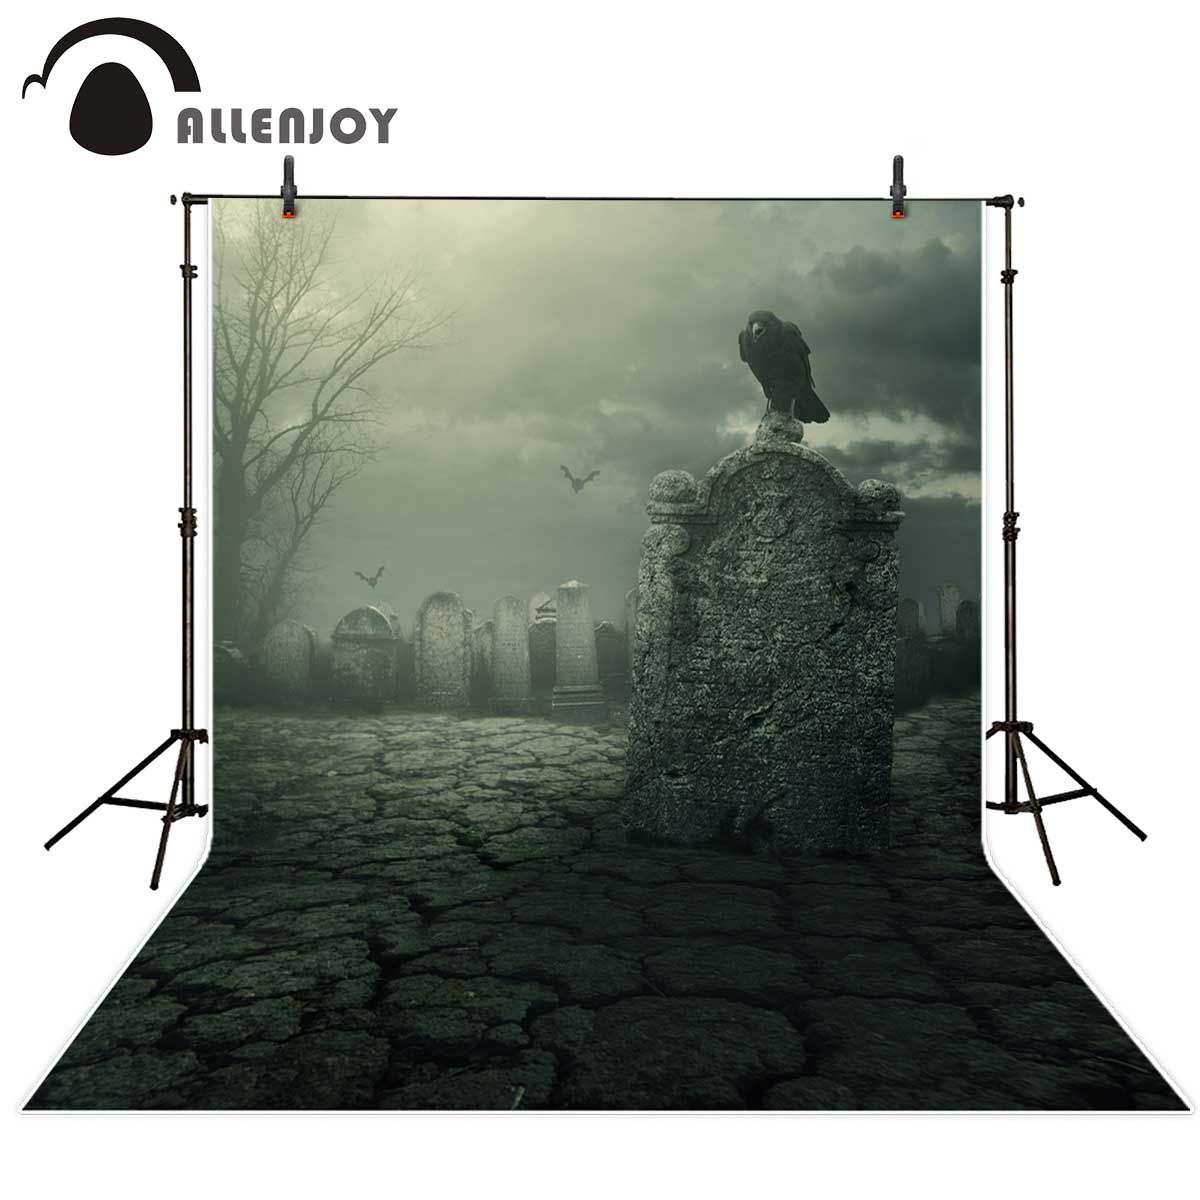 Allenjoy photographic background Crow grave cemetery gloomy tombstone backdrop newborn original design fantasy studio props allenjoy background for photo studio full moon spider black cat pumpkin halloween backdrop newborn original design fantasy props